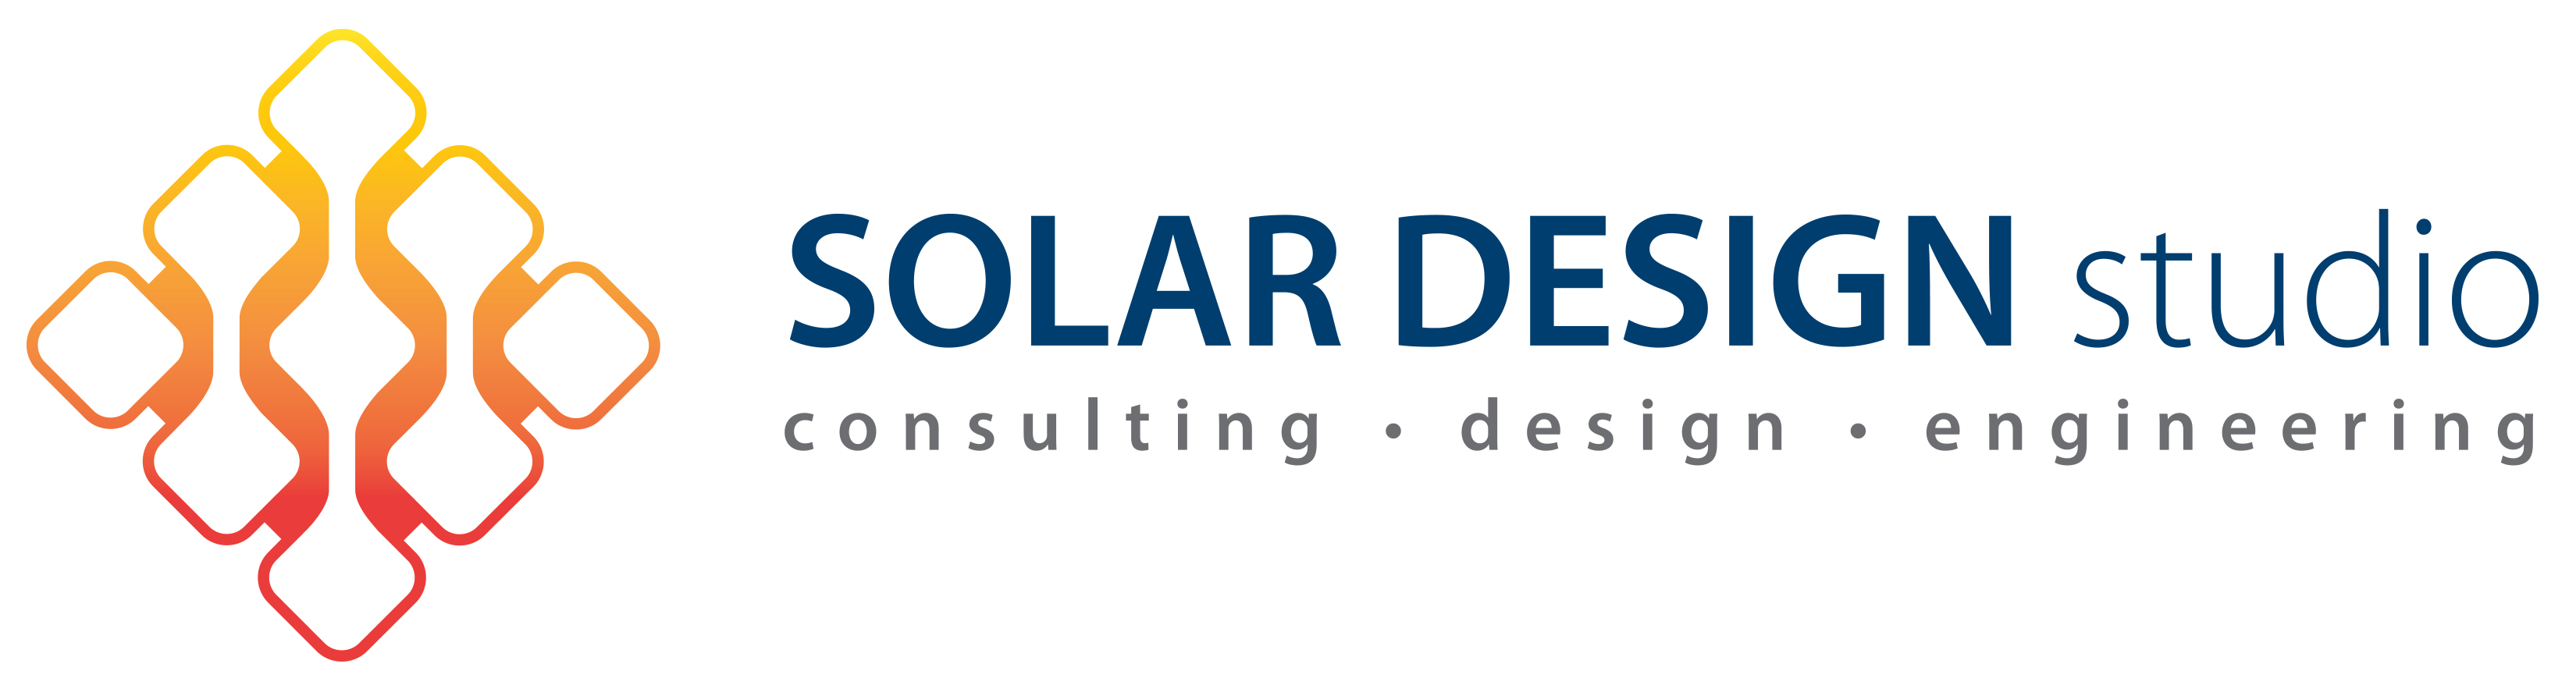 Solar-Design-Studio-Logo-Large.jpg